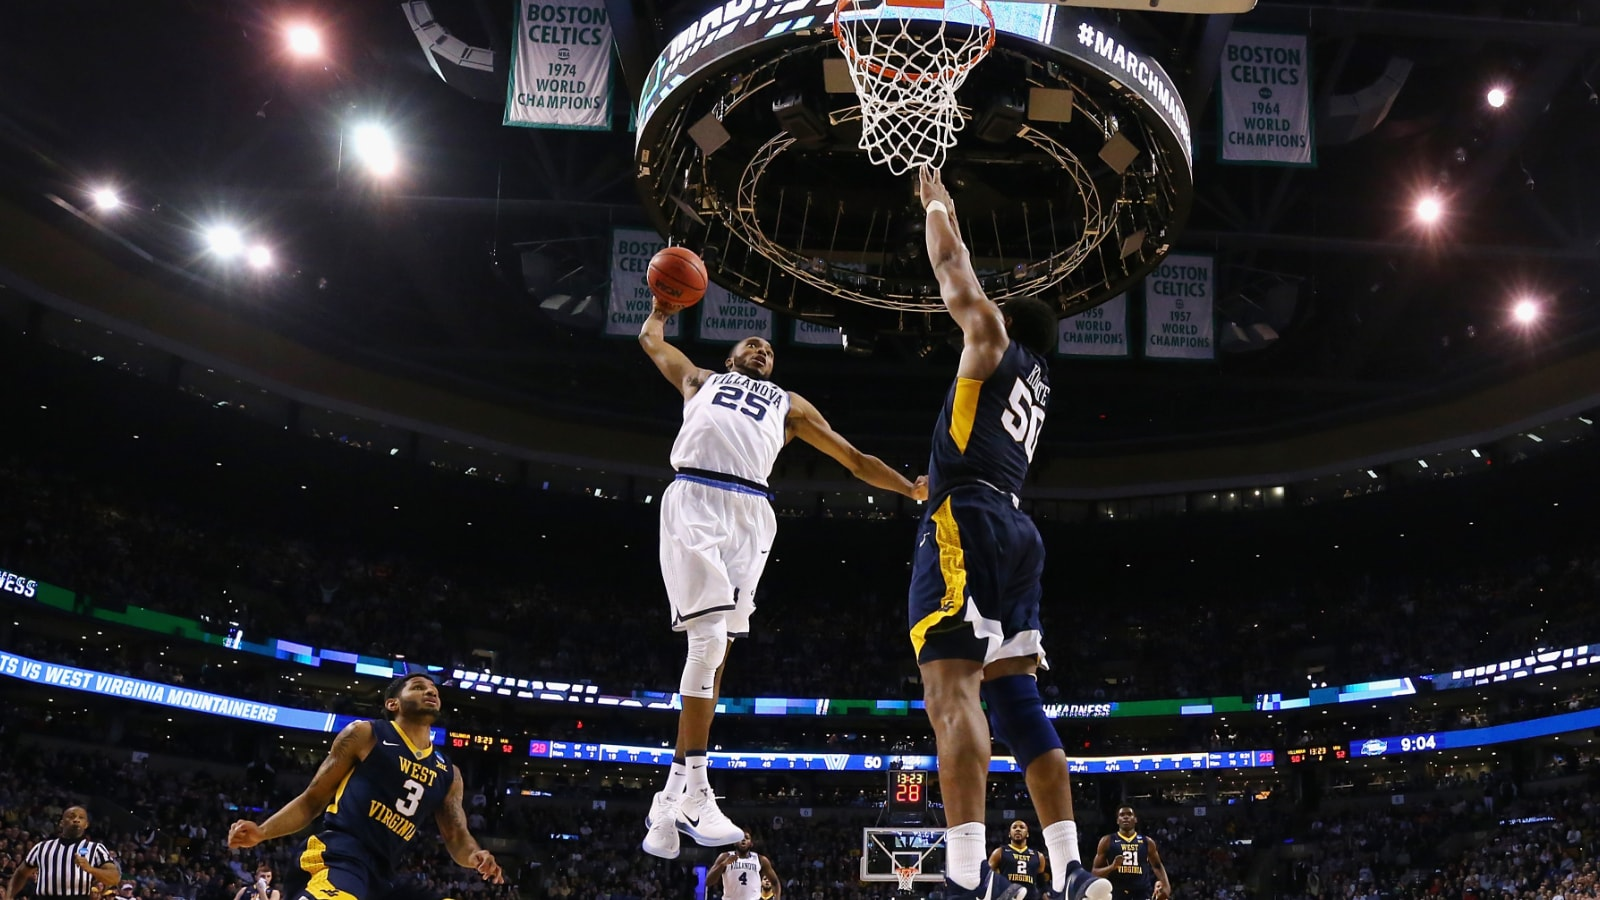 Mikal Bridges goes for the dunk against West Virginia